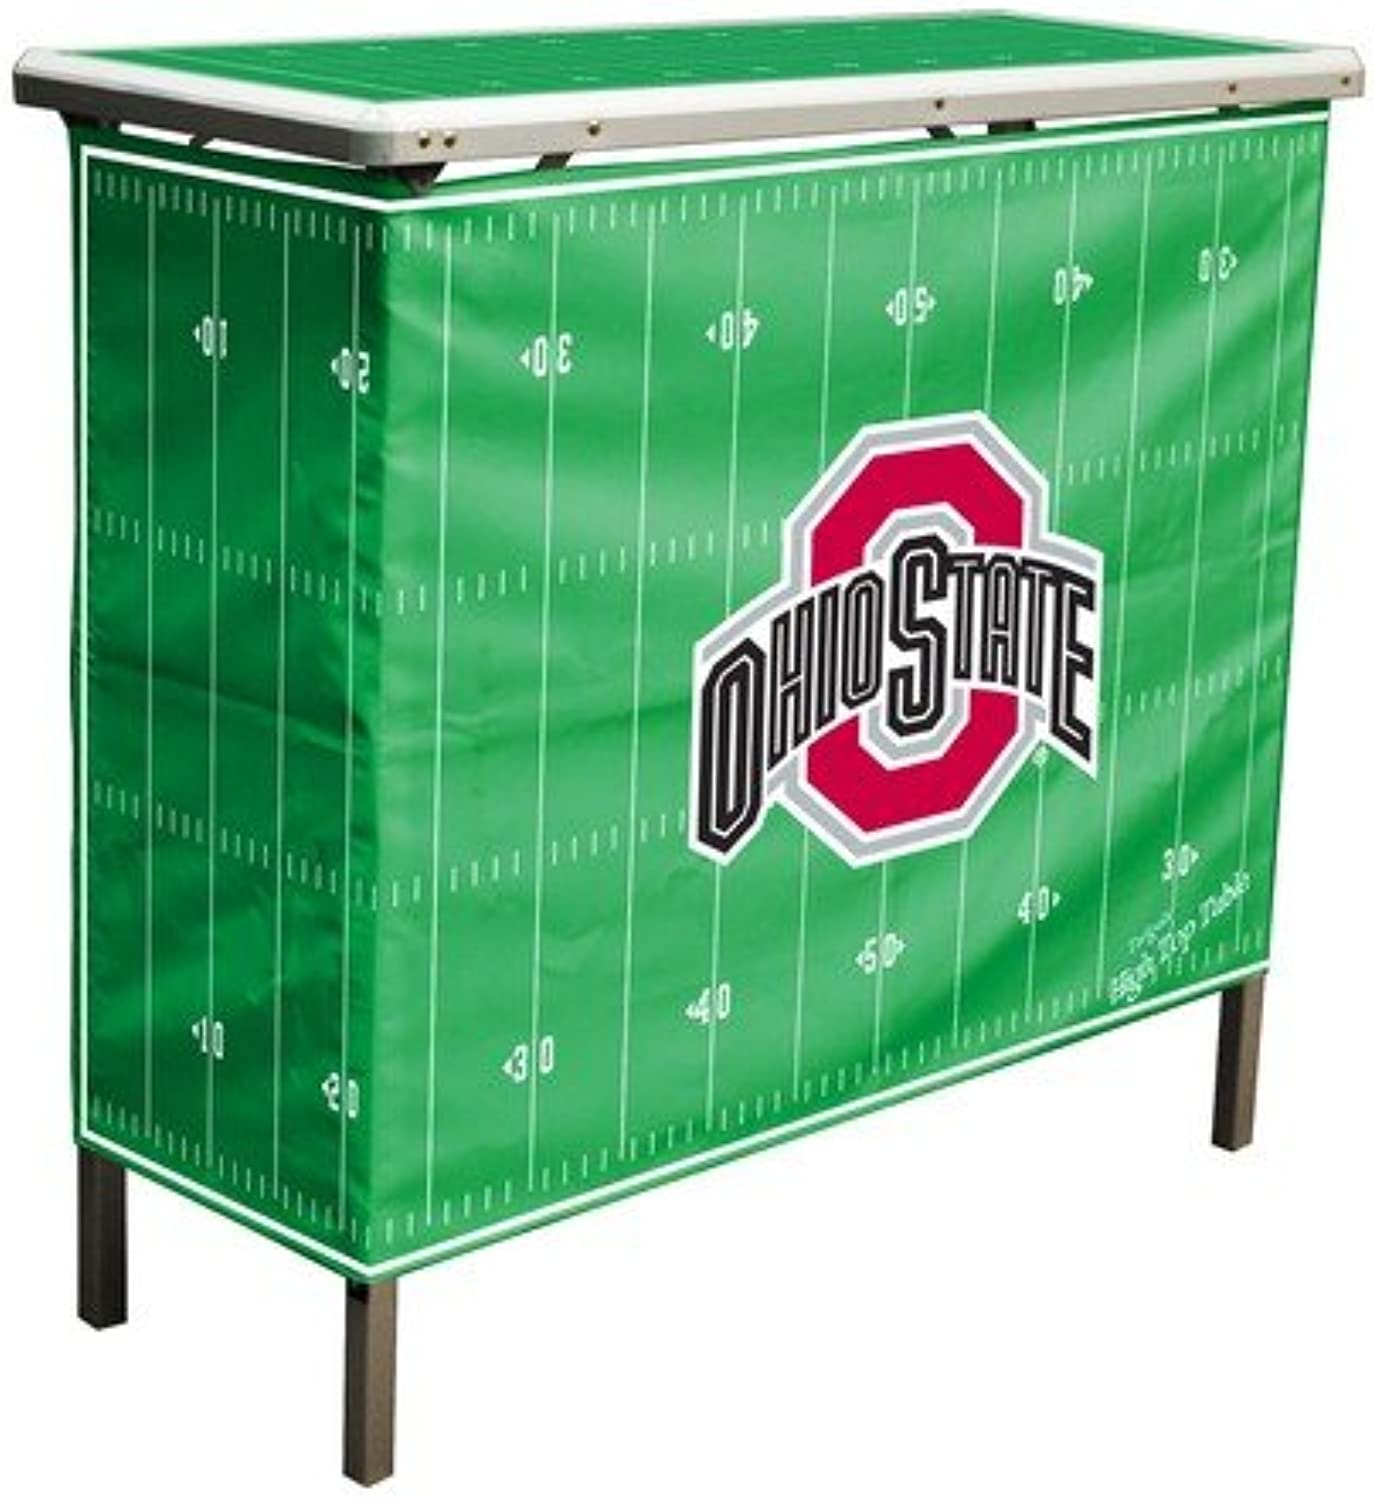 Wild Sports HIGHTCOSU NCAA Ohio State Buckeyes Aluminum High Top Folding Tailgate Table with Carrying Case